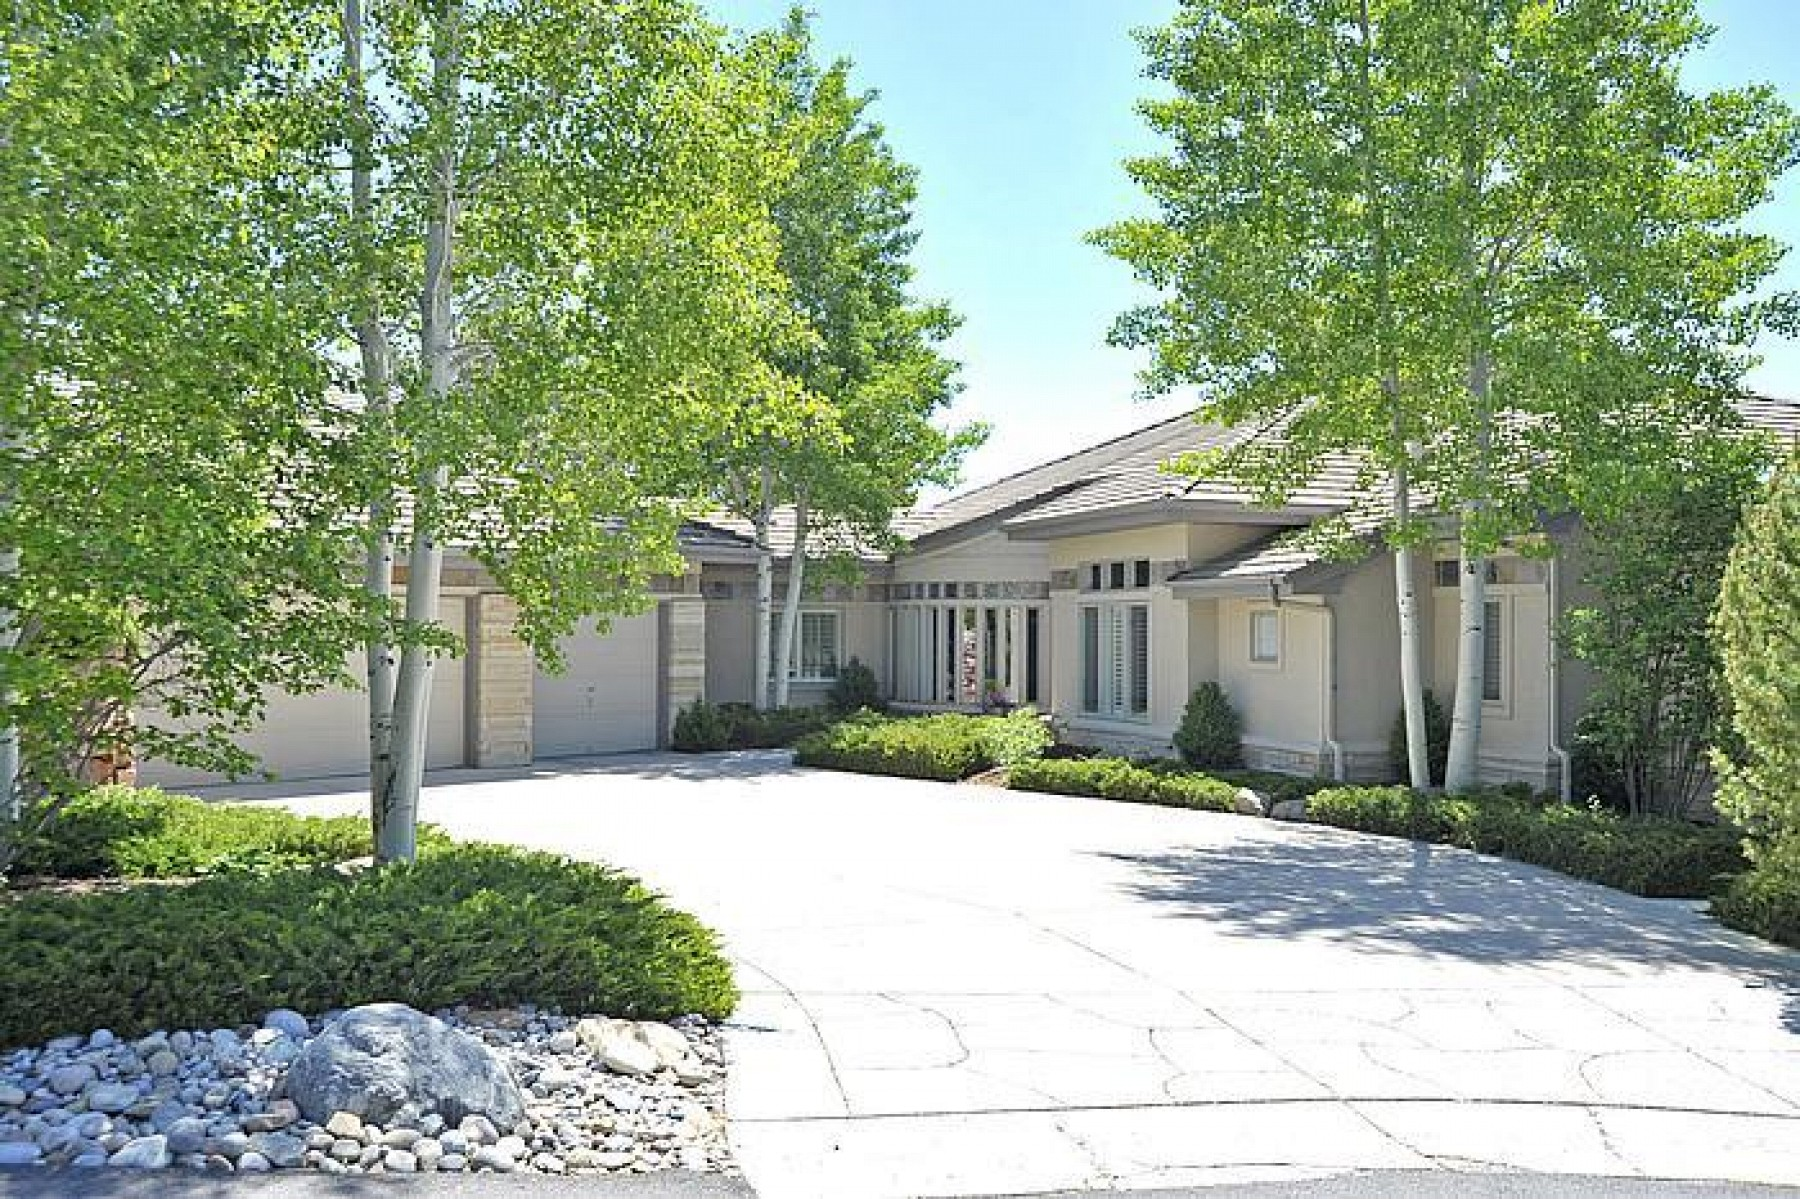 901 ANACONDA CT, Castle Rock, CO 80108